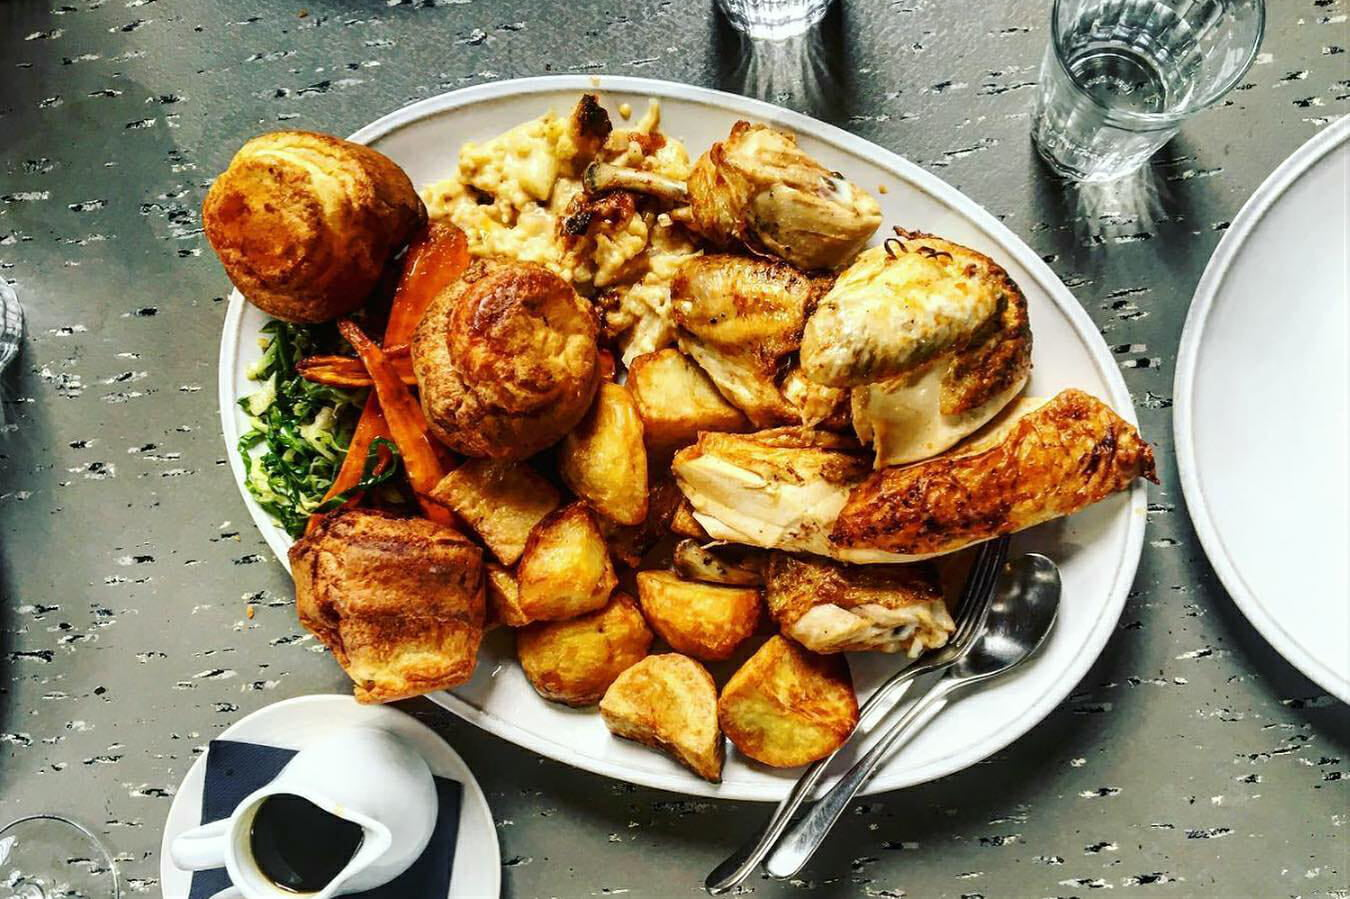 Culpeper Sunday roast